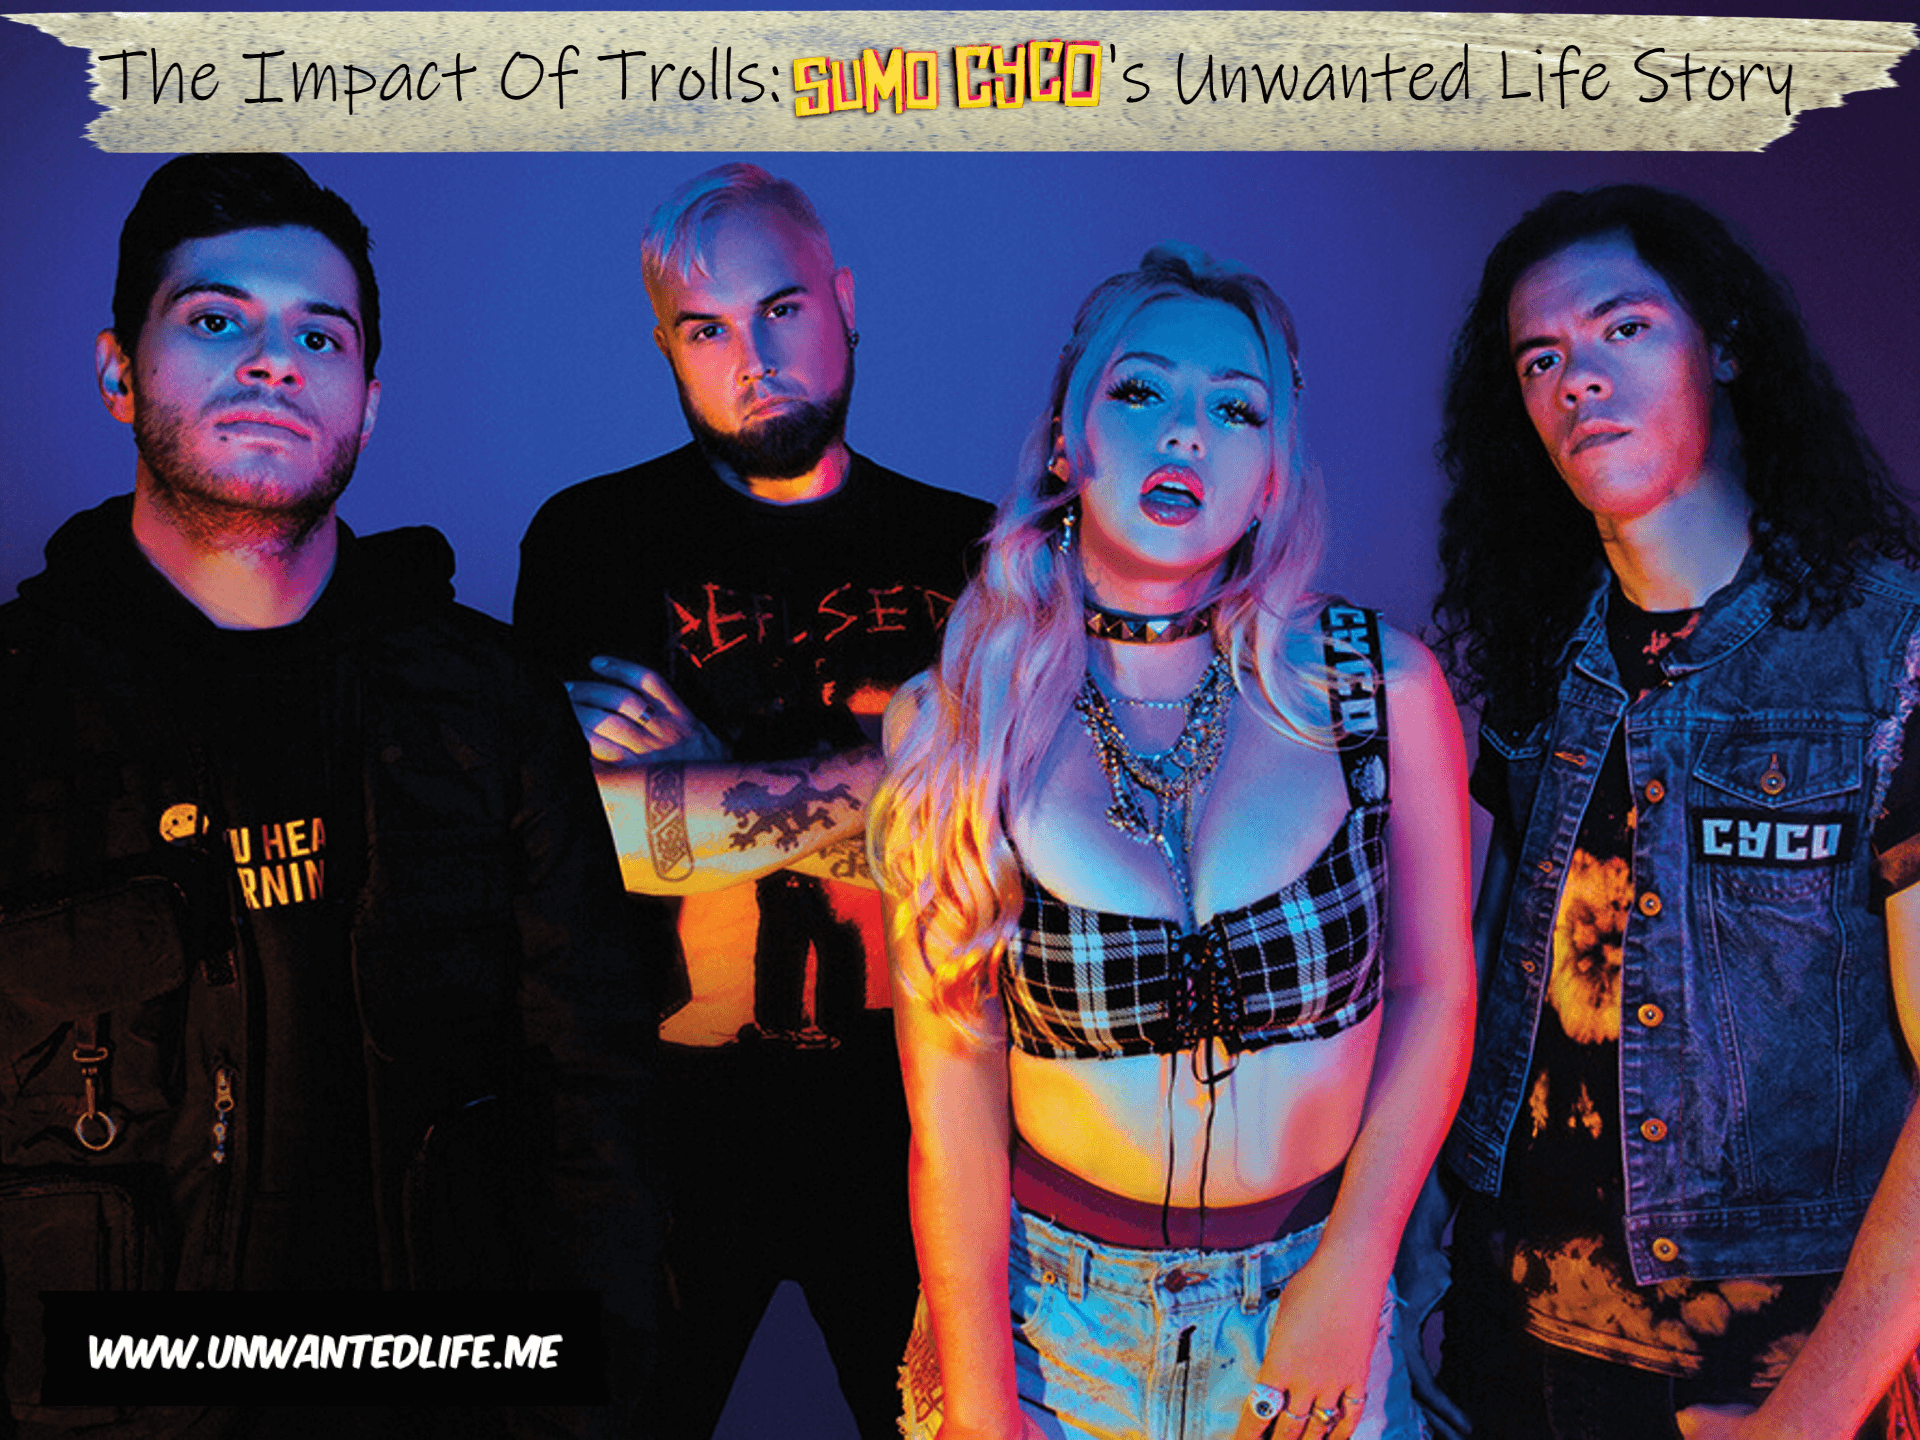 A photo of the band Sumo Cyco to represent the topic of the article The Impact Of Trolls: Sumo Cyco's Unwanted Life Story